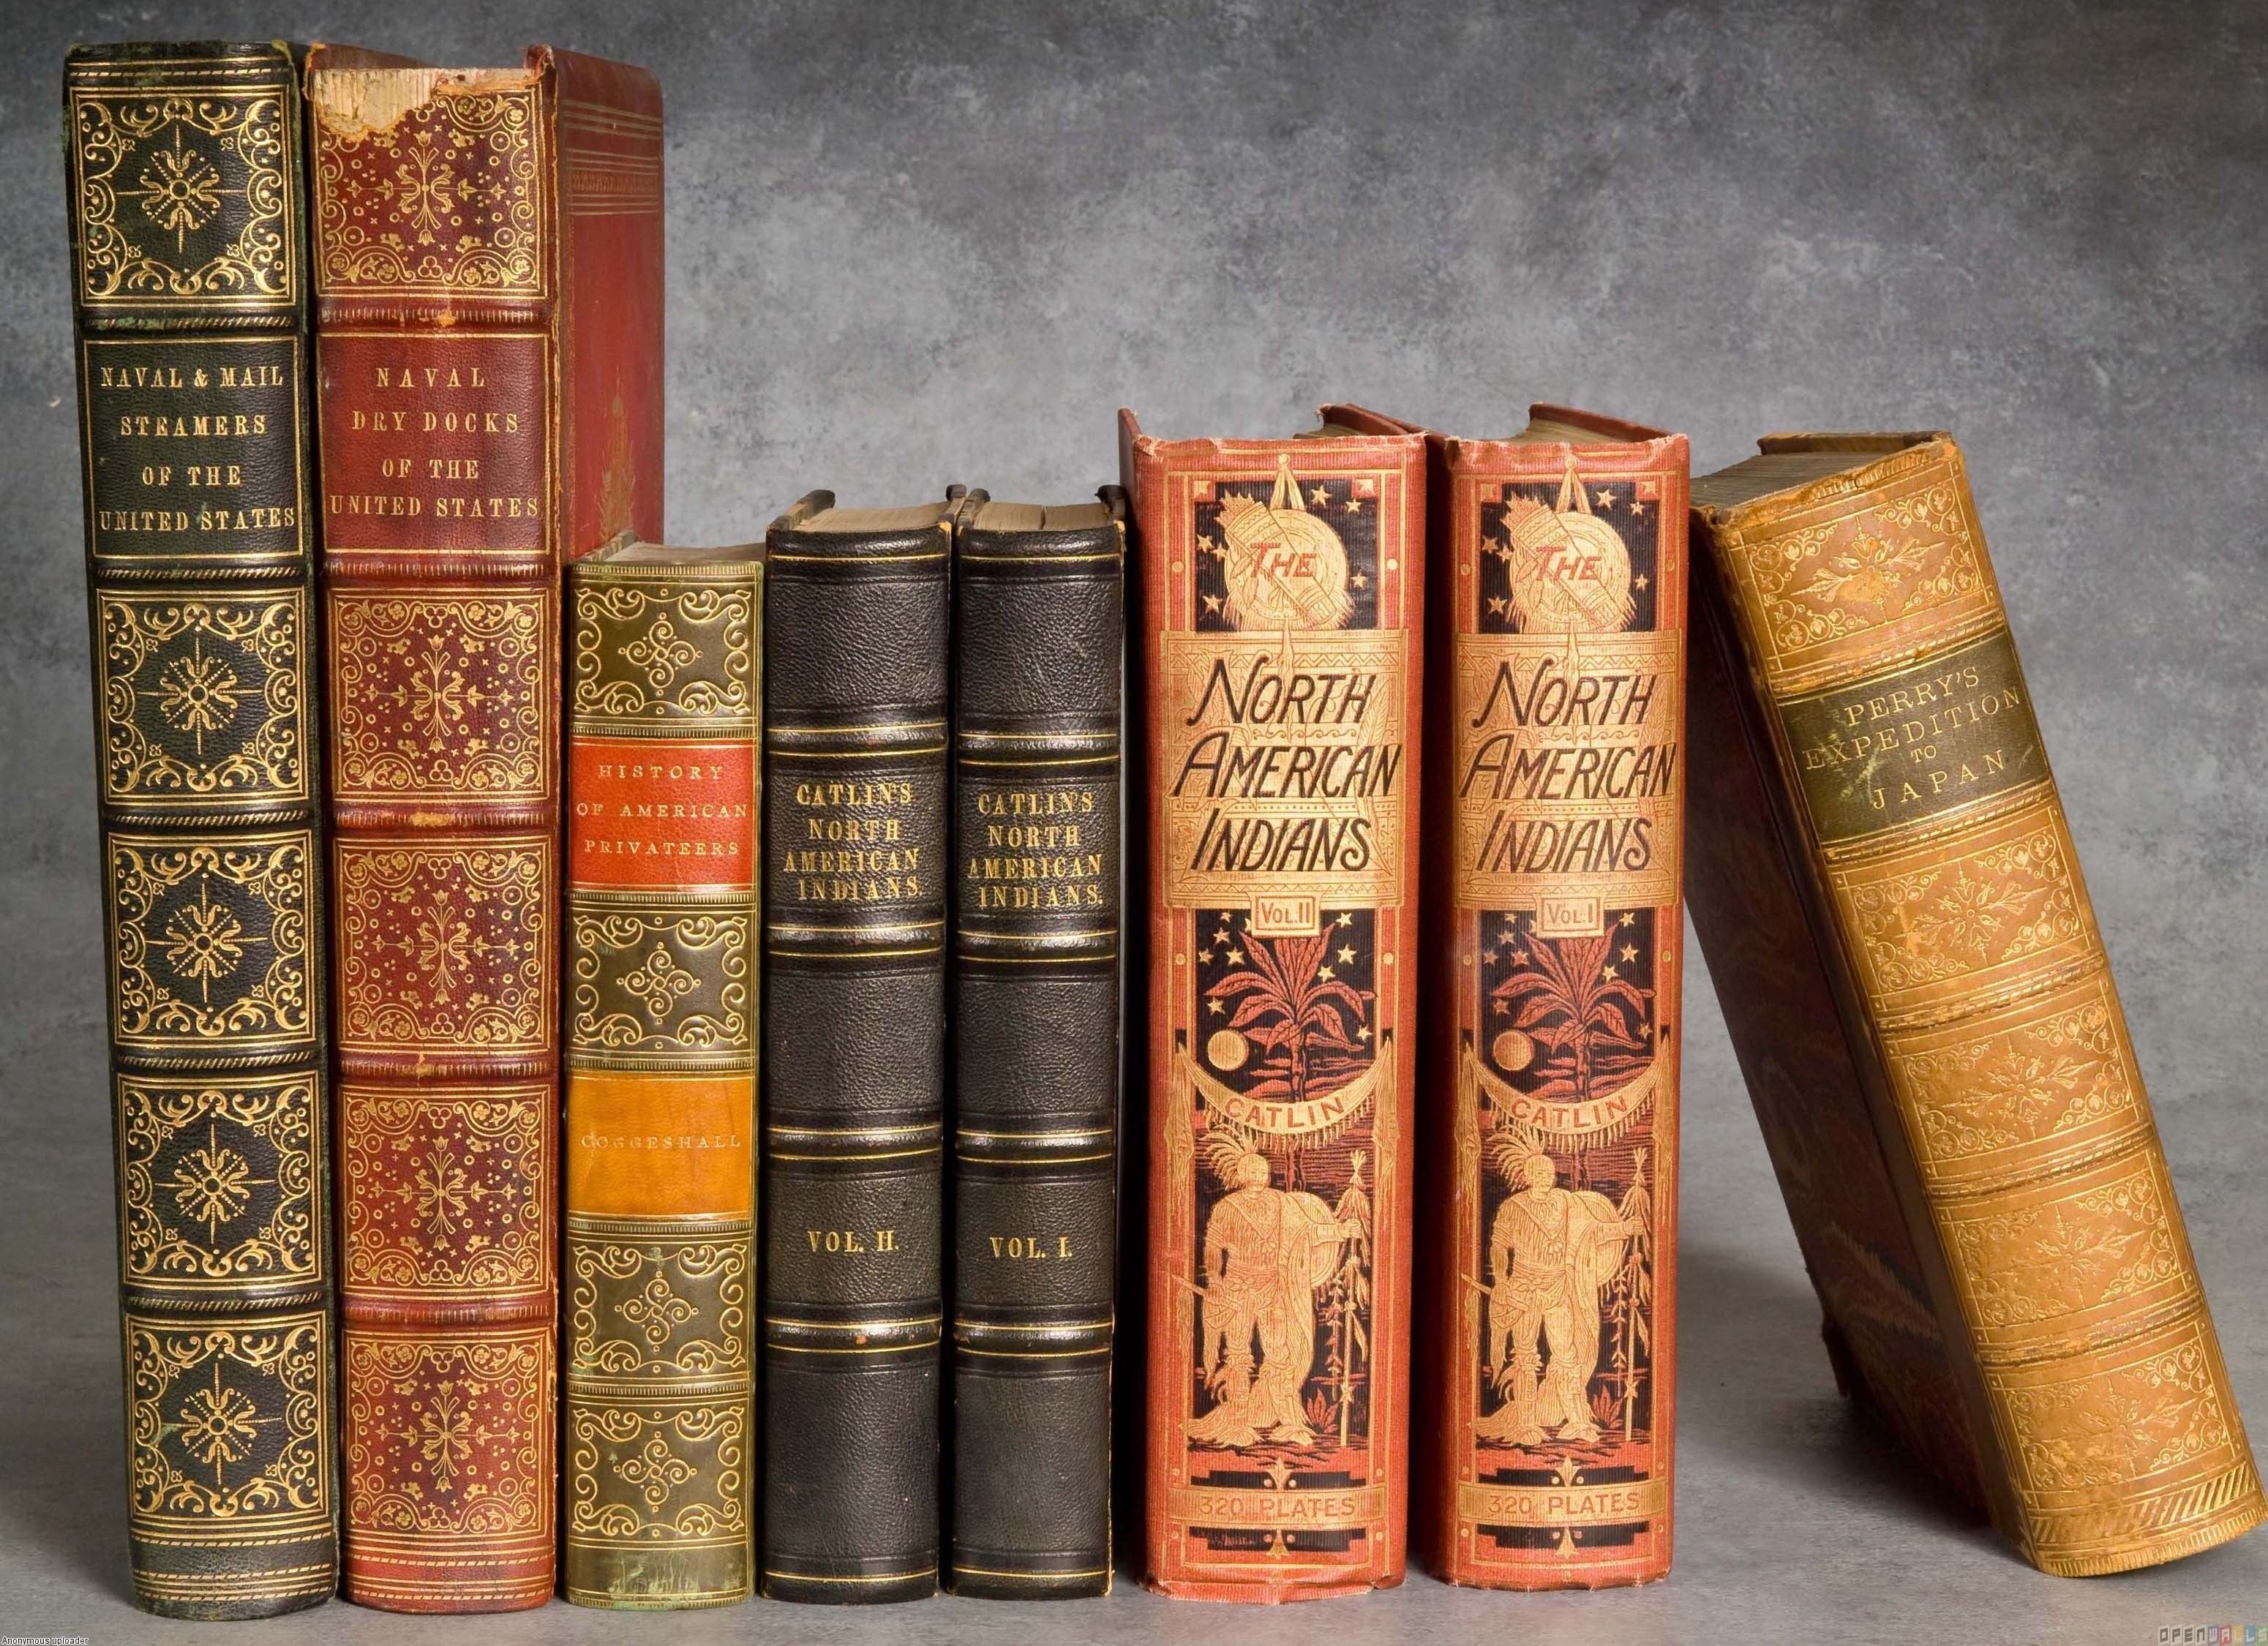 old books uploader anonymous licence category others tags books old 3100x2250